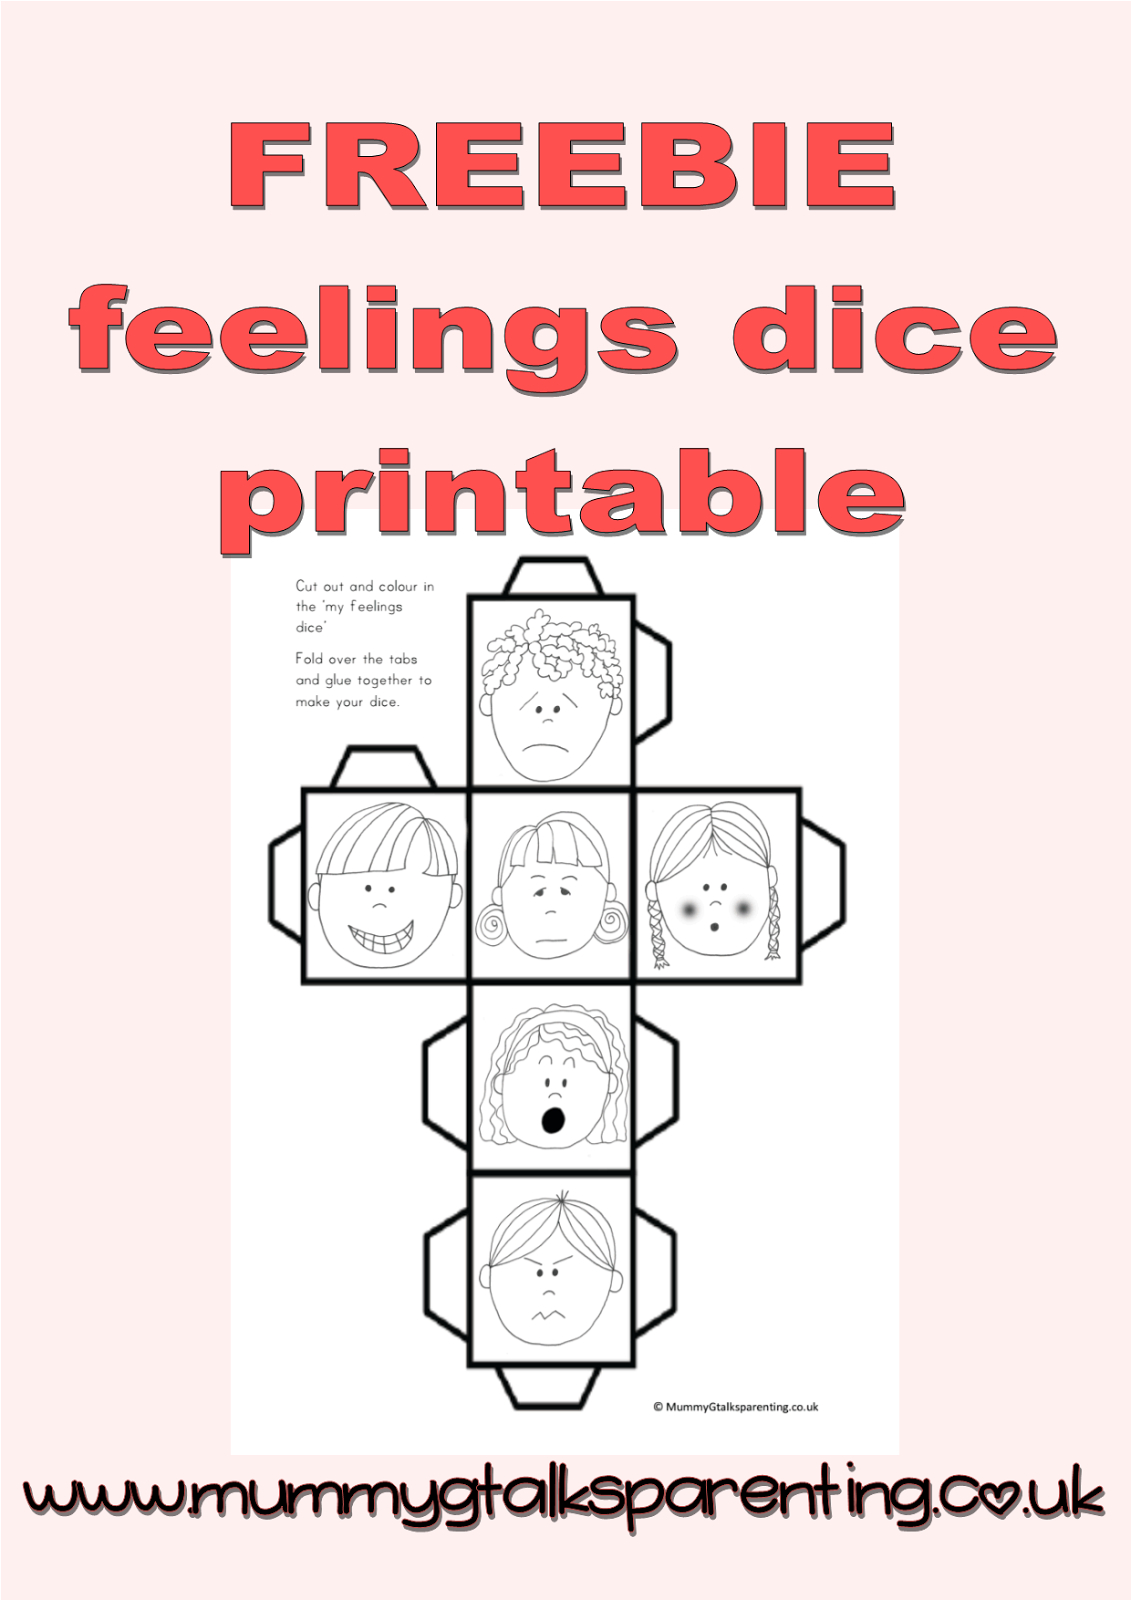 Freebie Feeling Dice Printable. Freebie Preschool Printables. Fun - Free Printable Childminding Resources